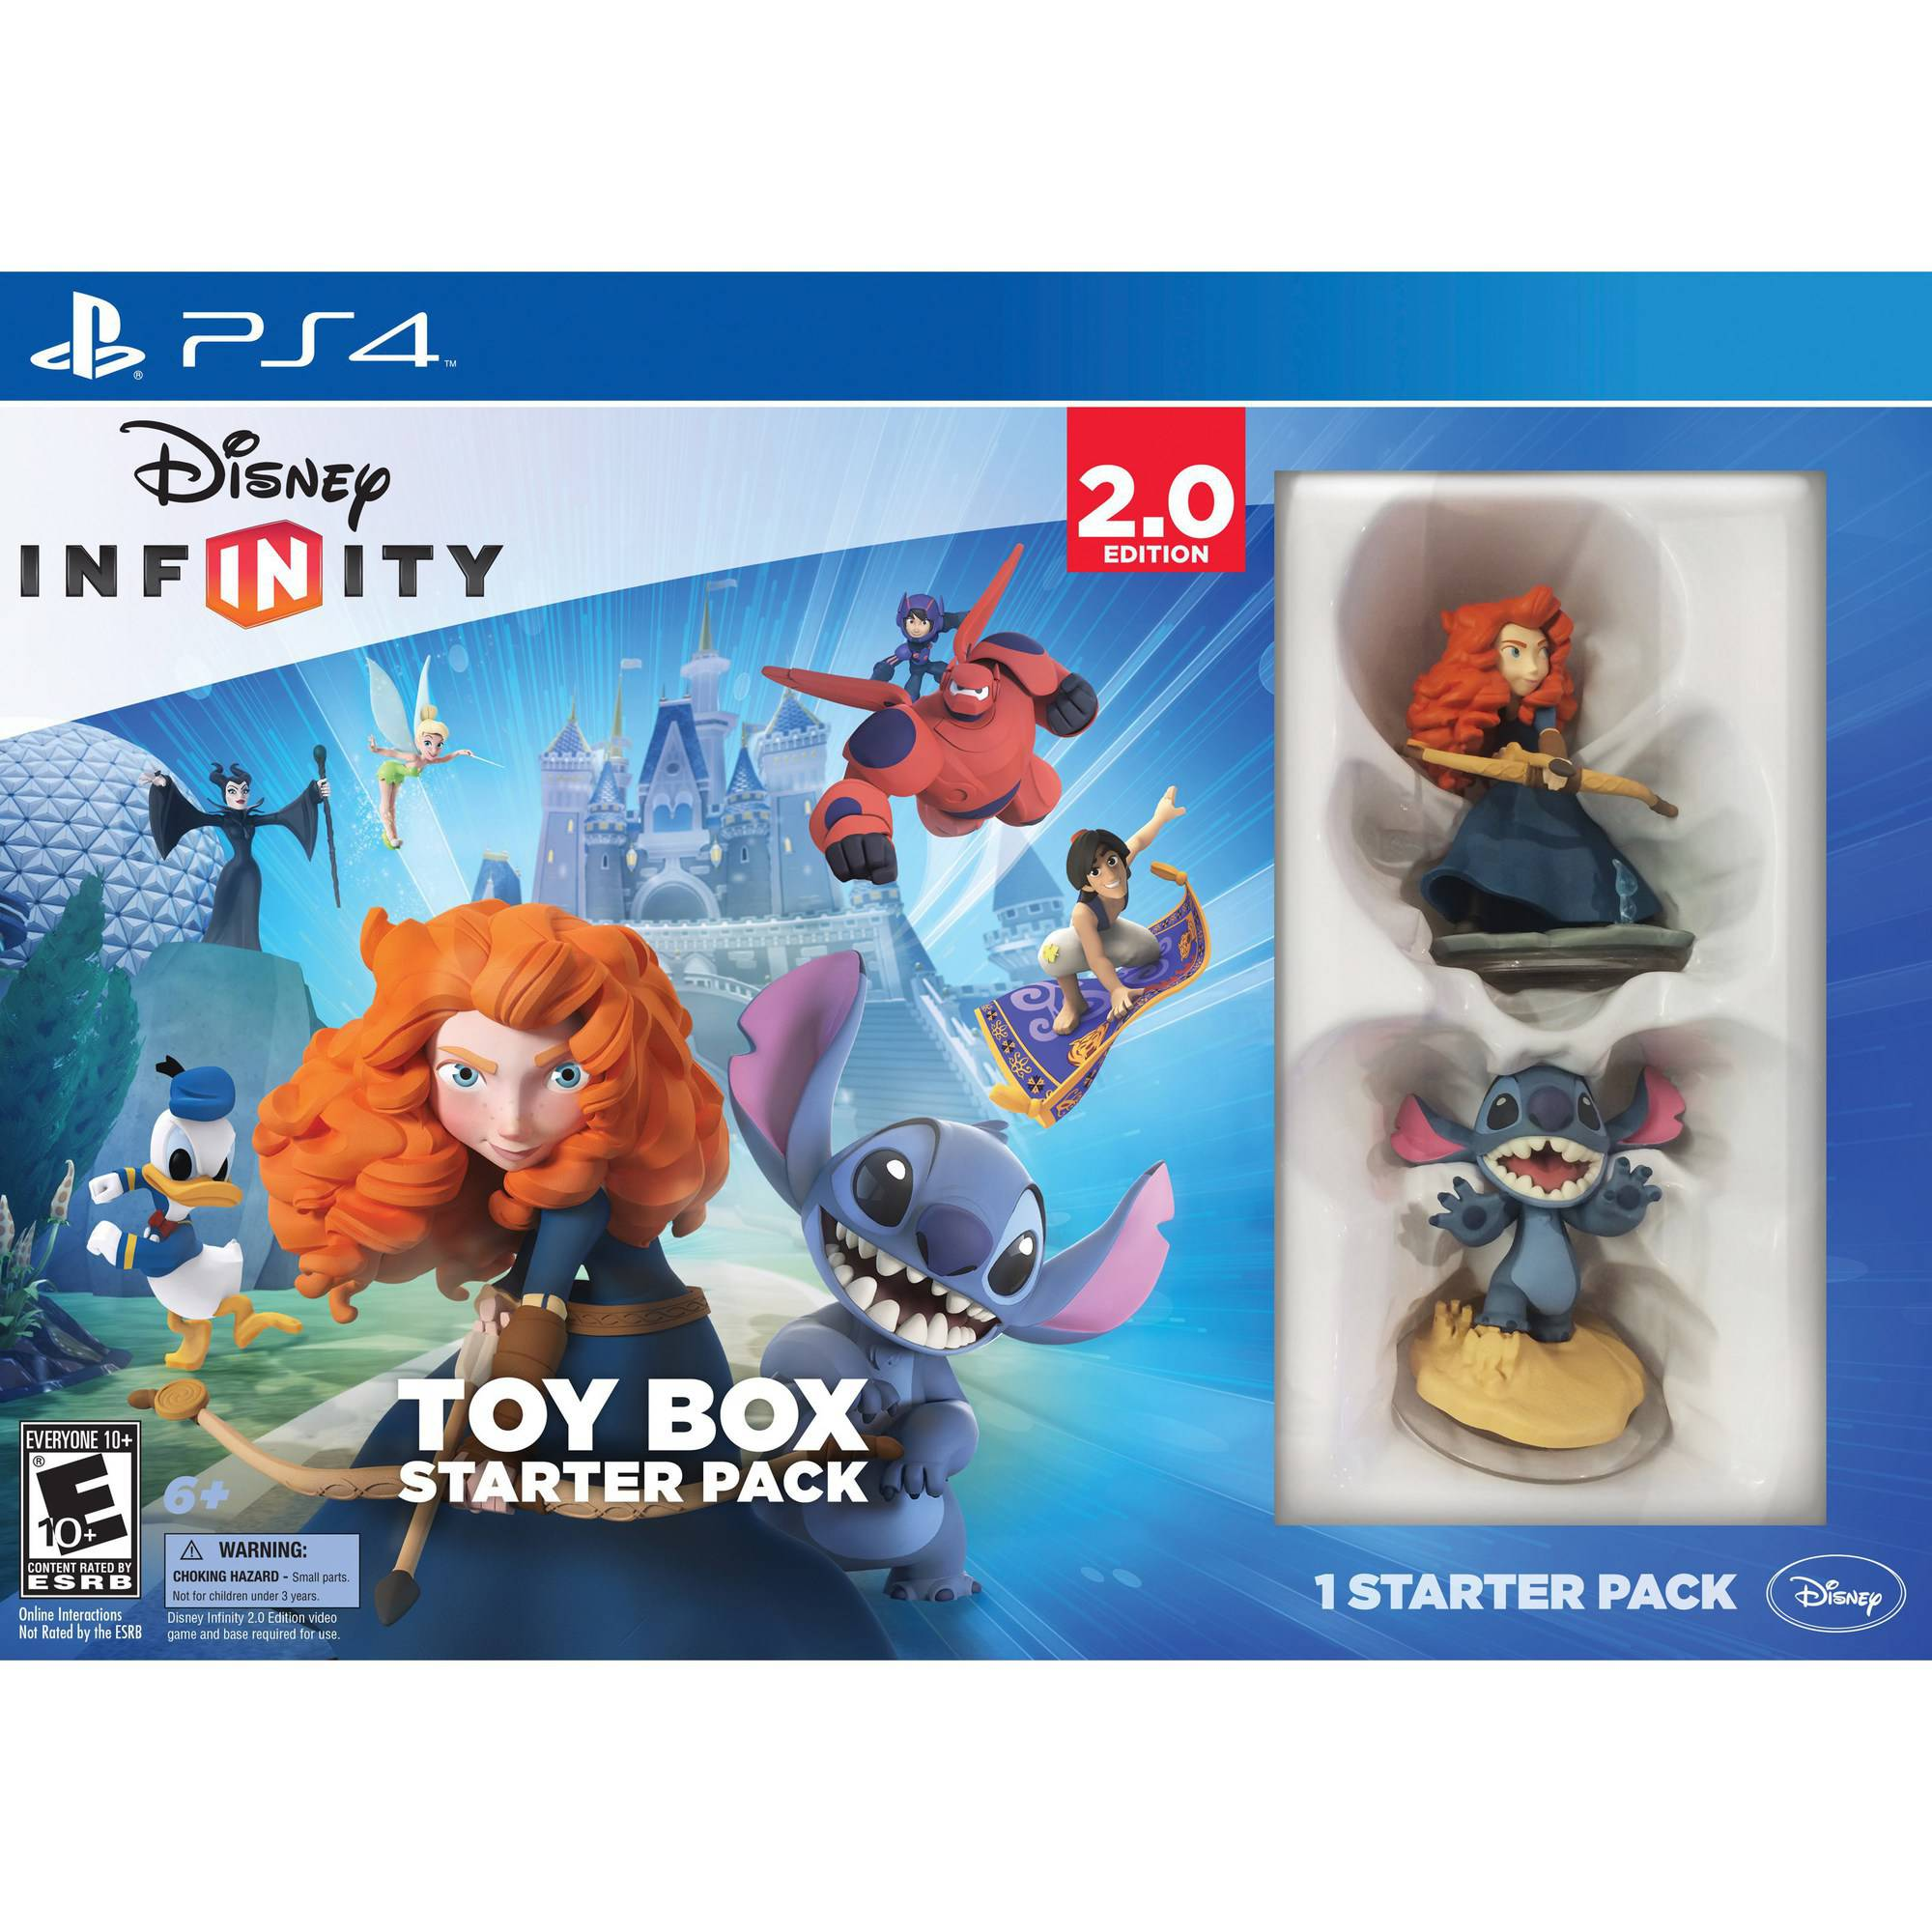 Disney Infinity: Disney Originals (2.0 Edition) Toy Box Starter Pack (PS4)